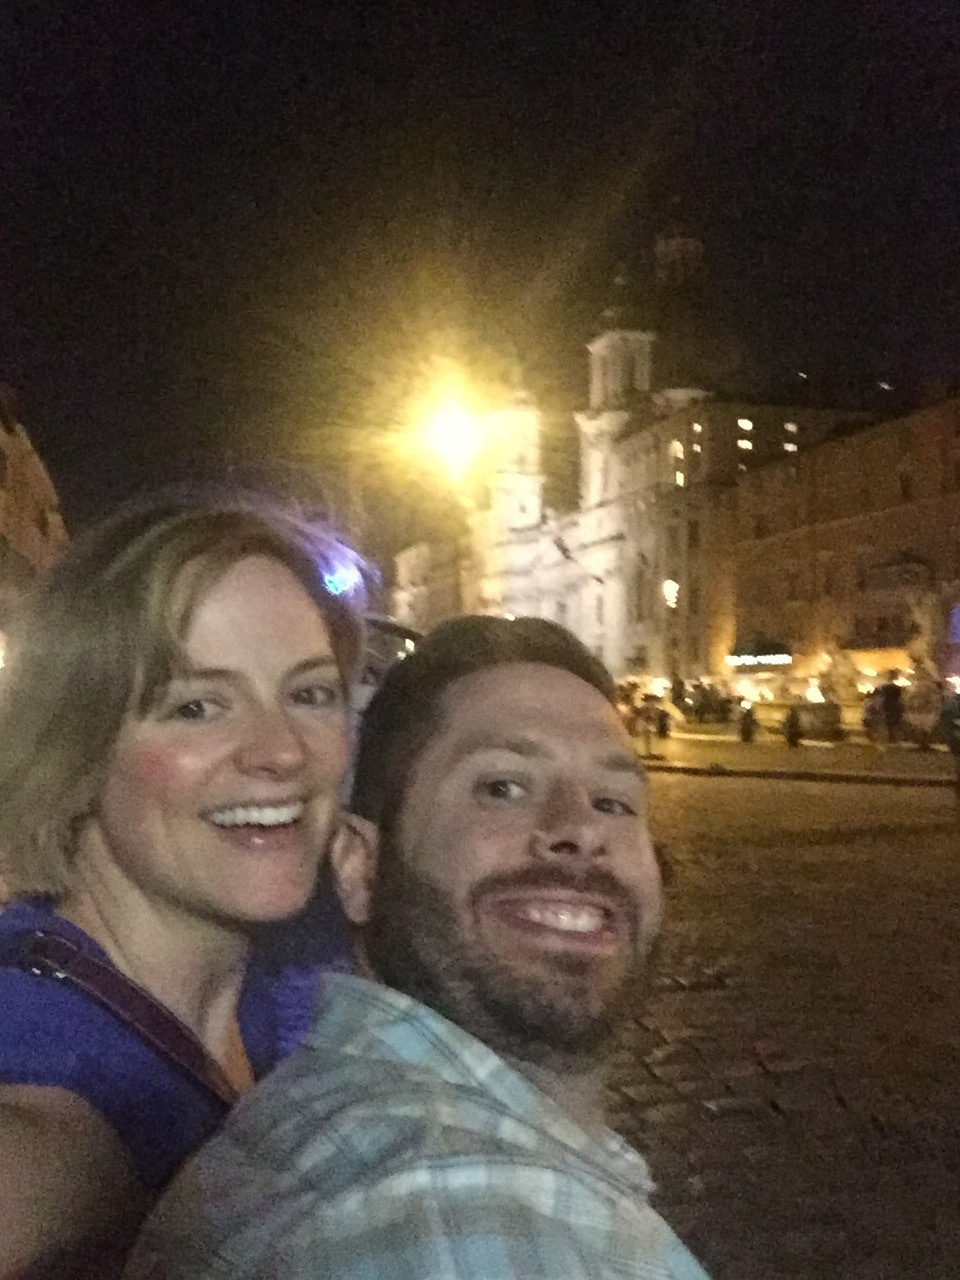 We never bought a selfie stick in the Piazza Navona but maybe we should have